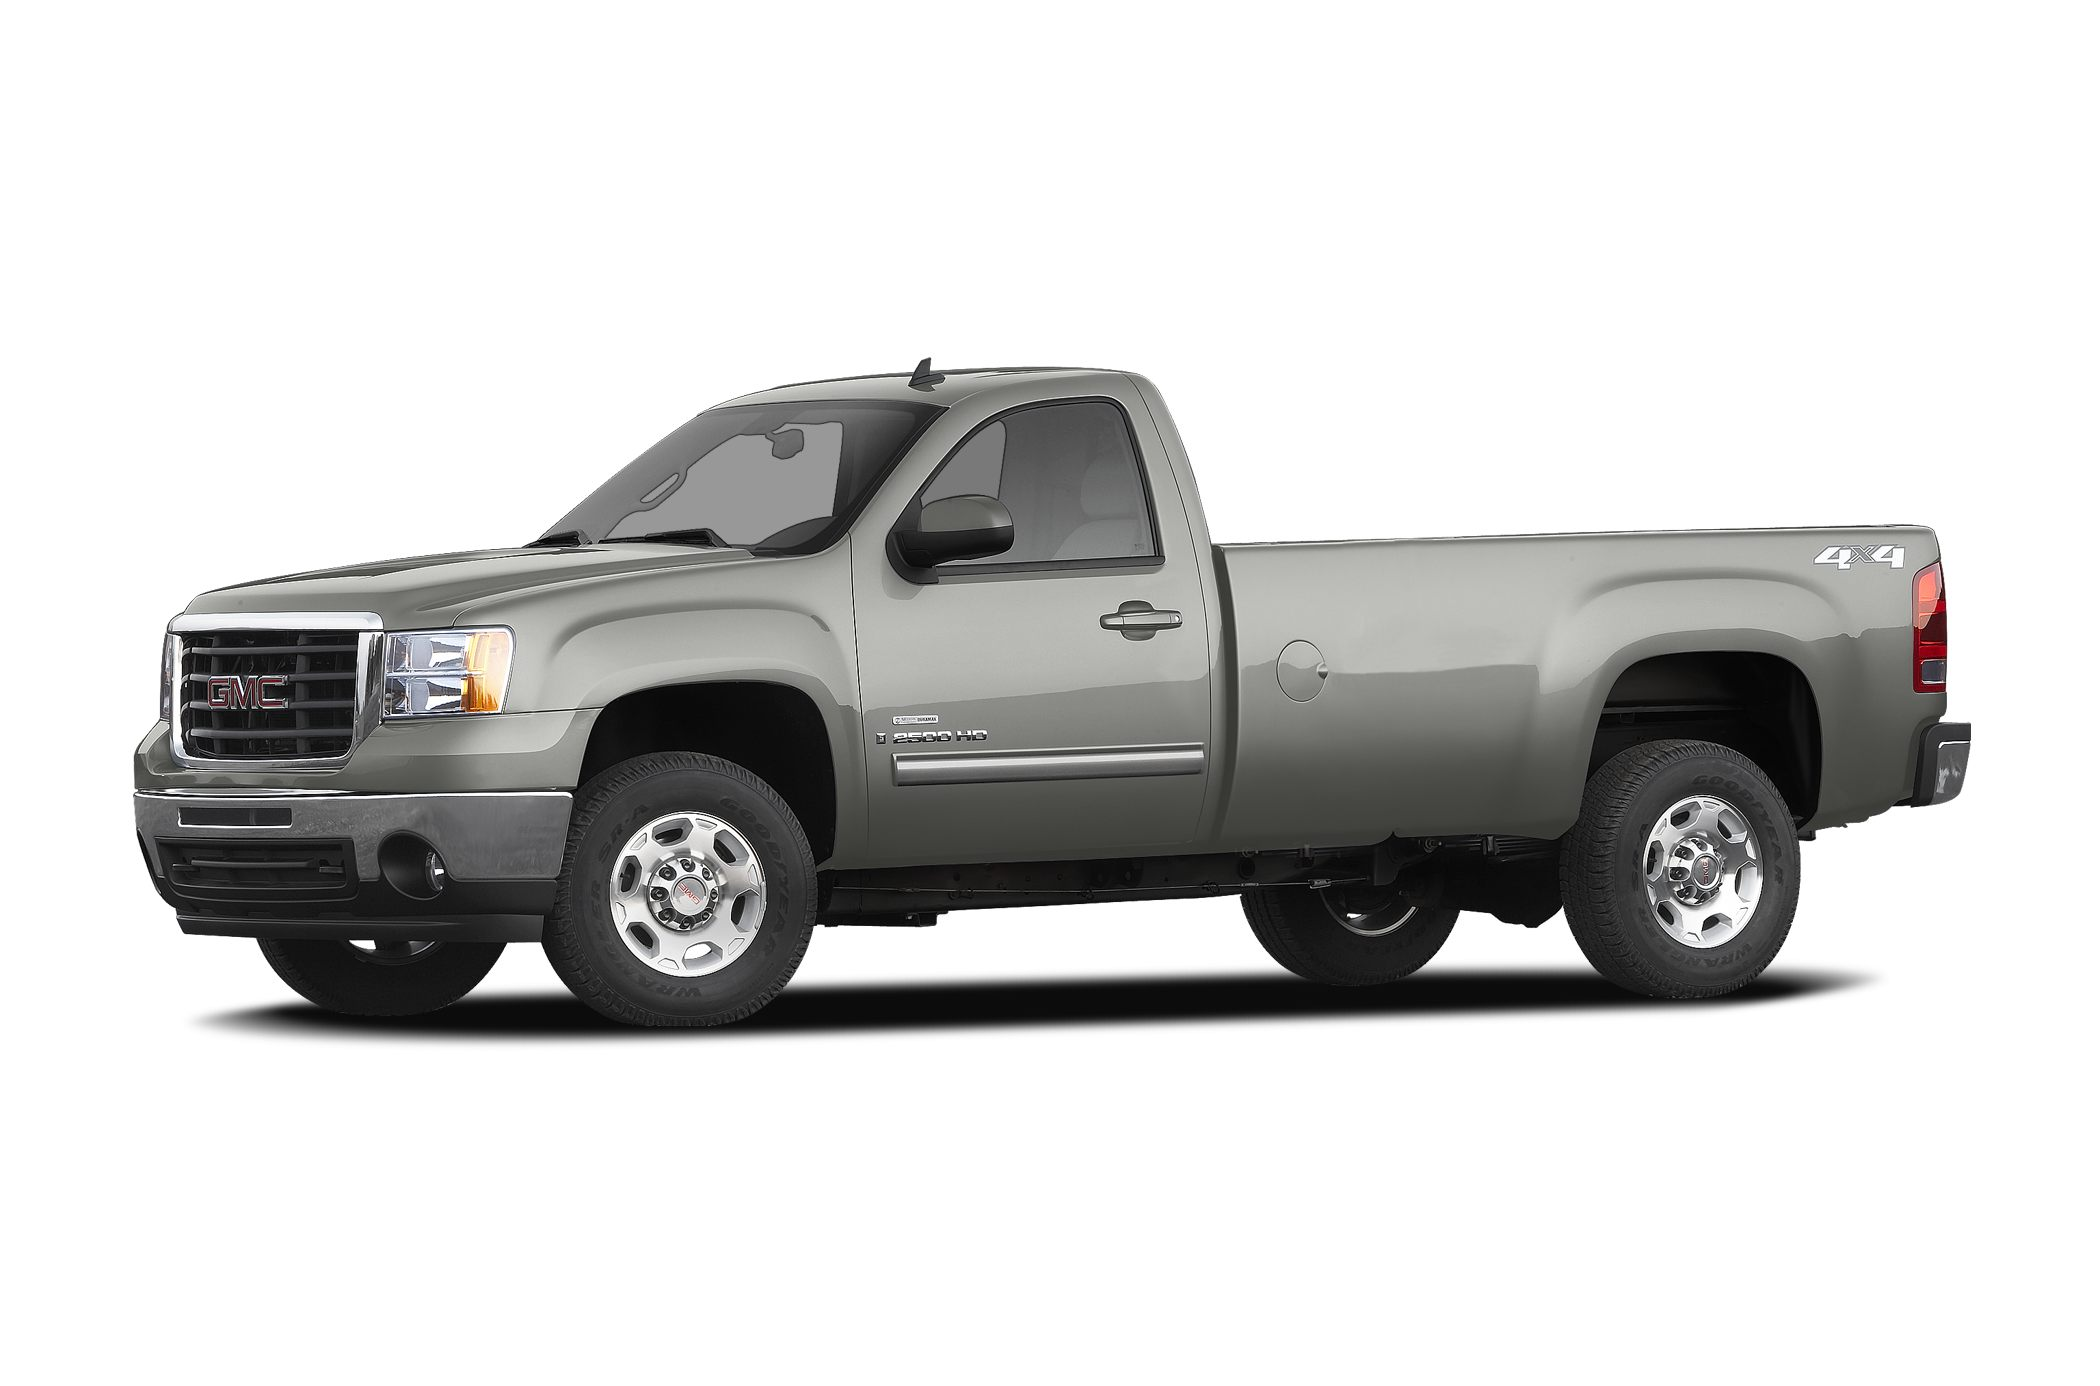 2009 GMC Sierra 3500 SLE Crew Cab Pickup for sale in Port Angeles for $41,995 with 59,633 miles